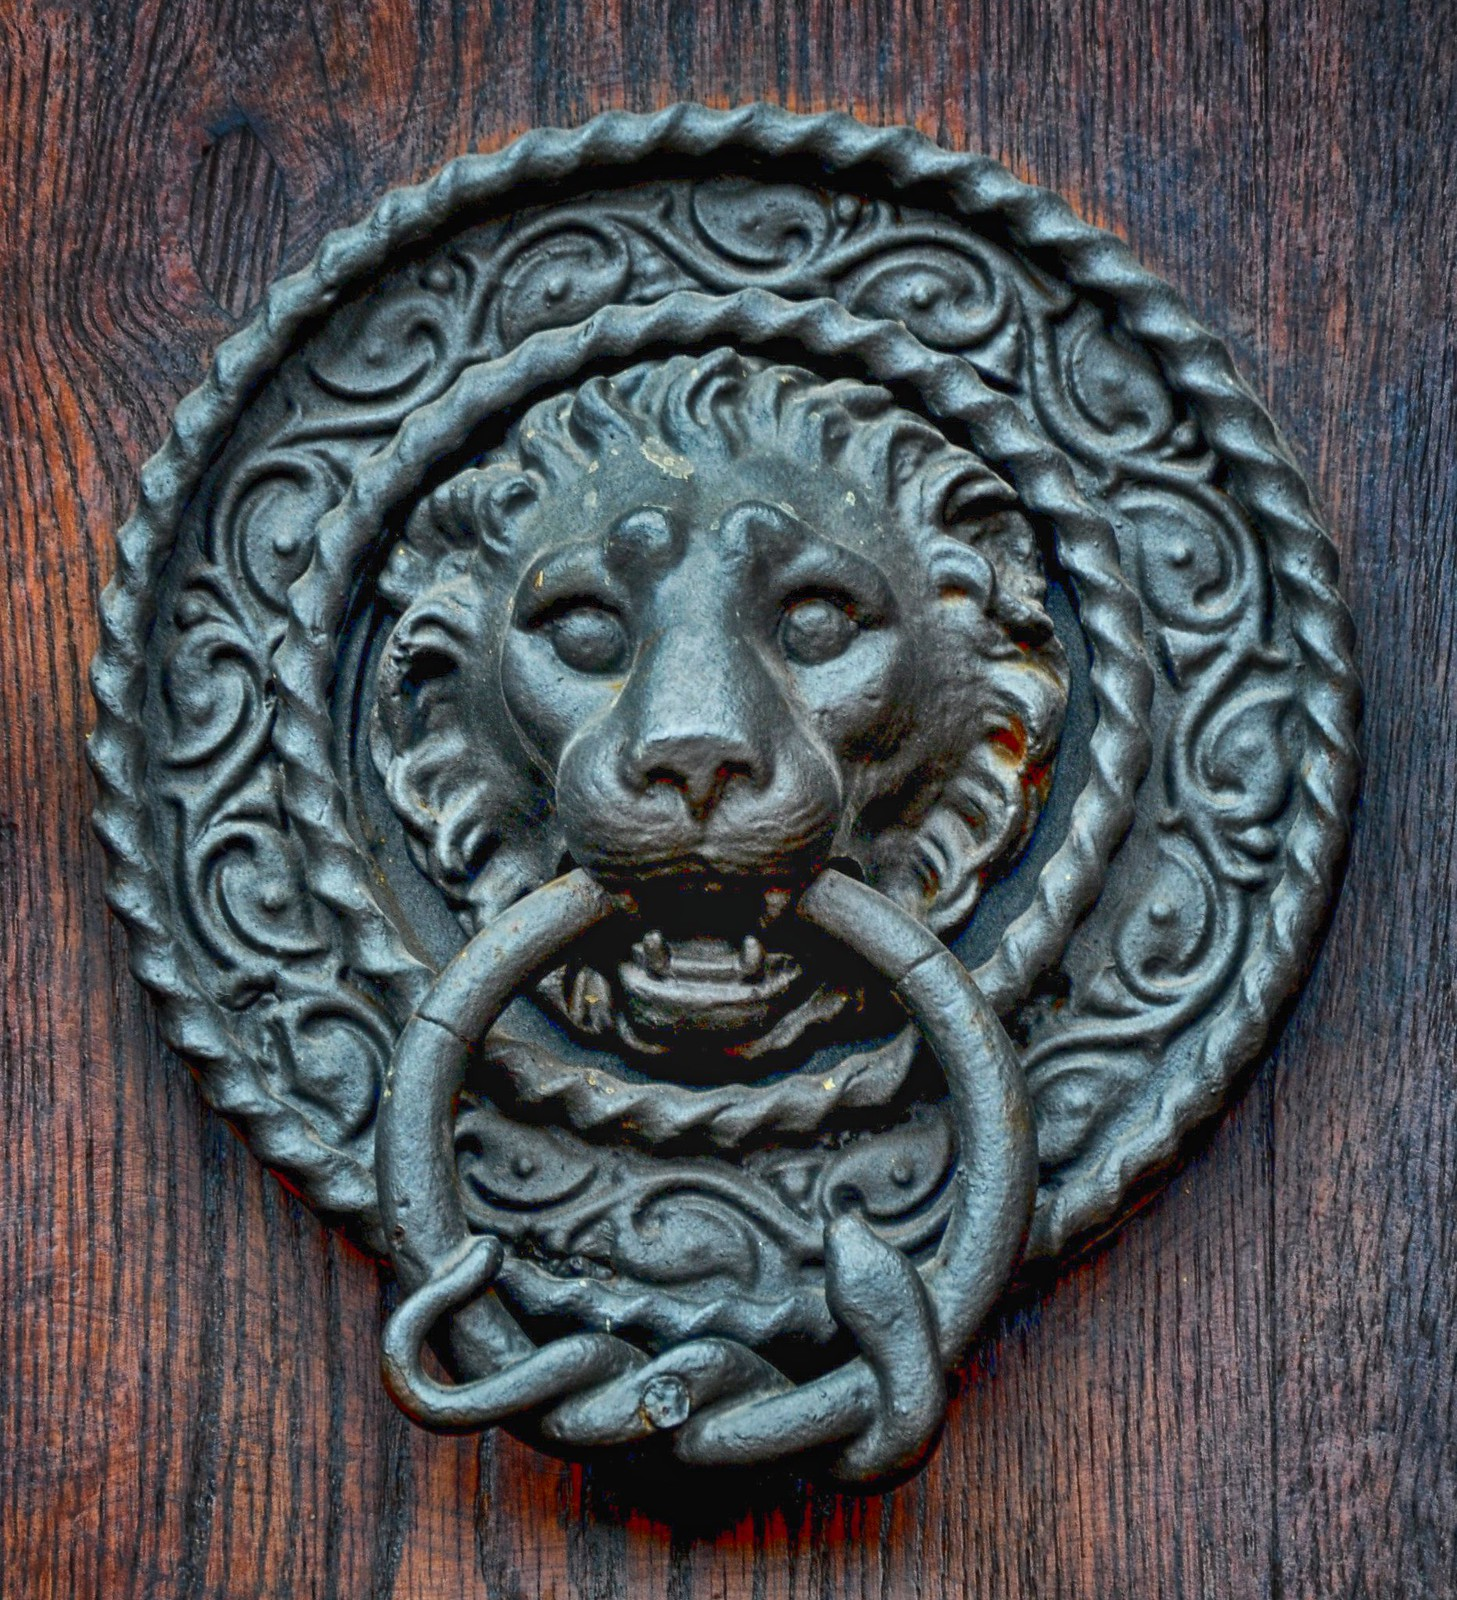 Lion head door knocker, Black Forest, Germany